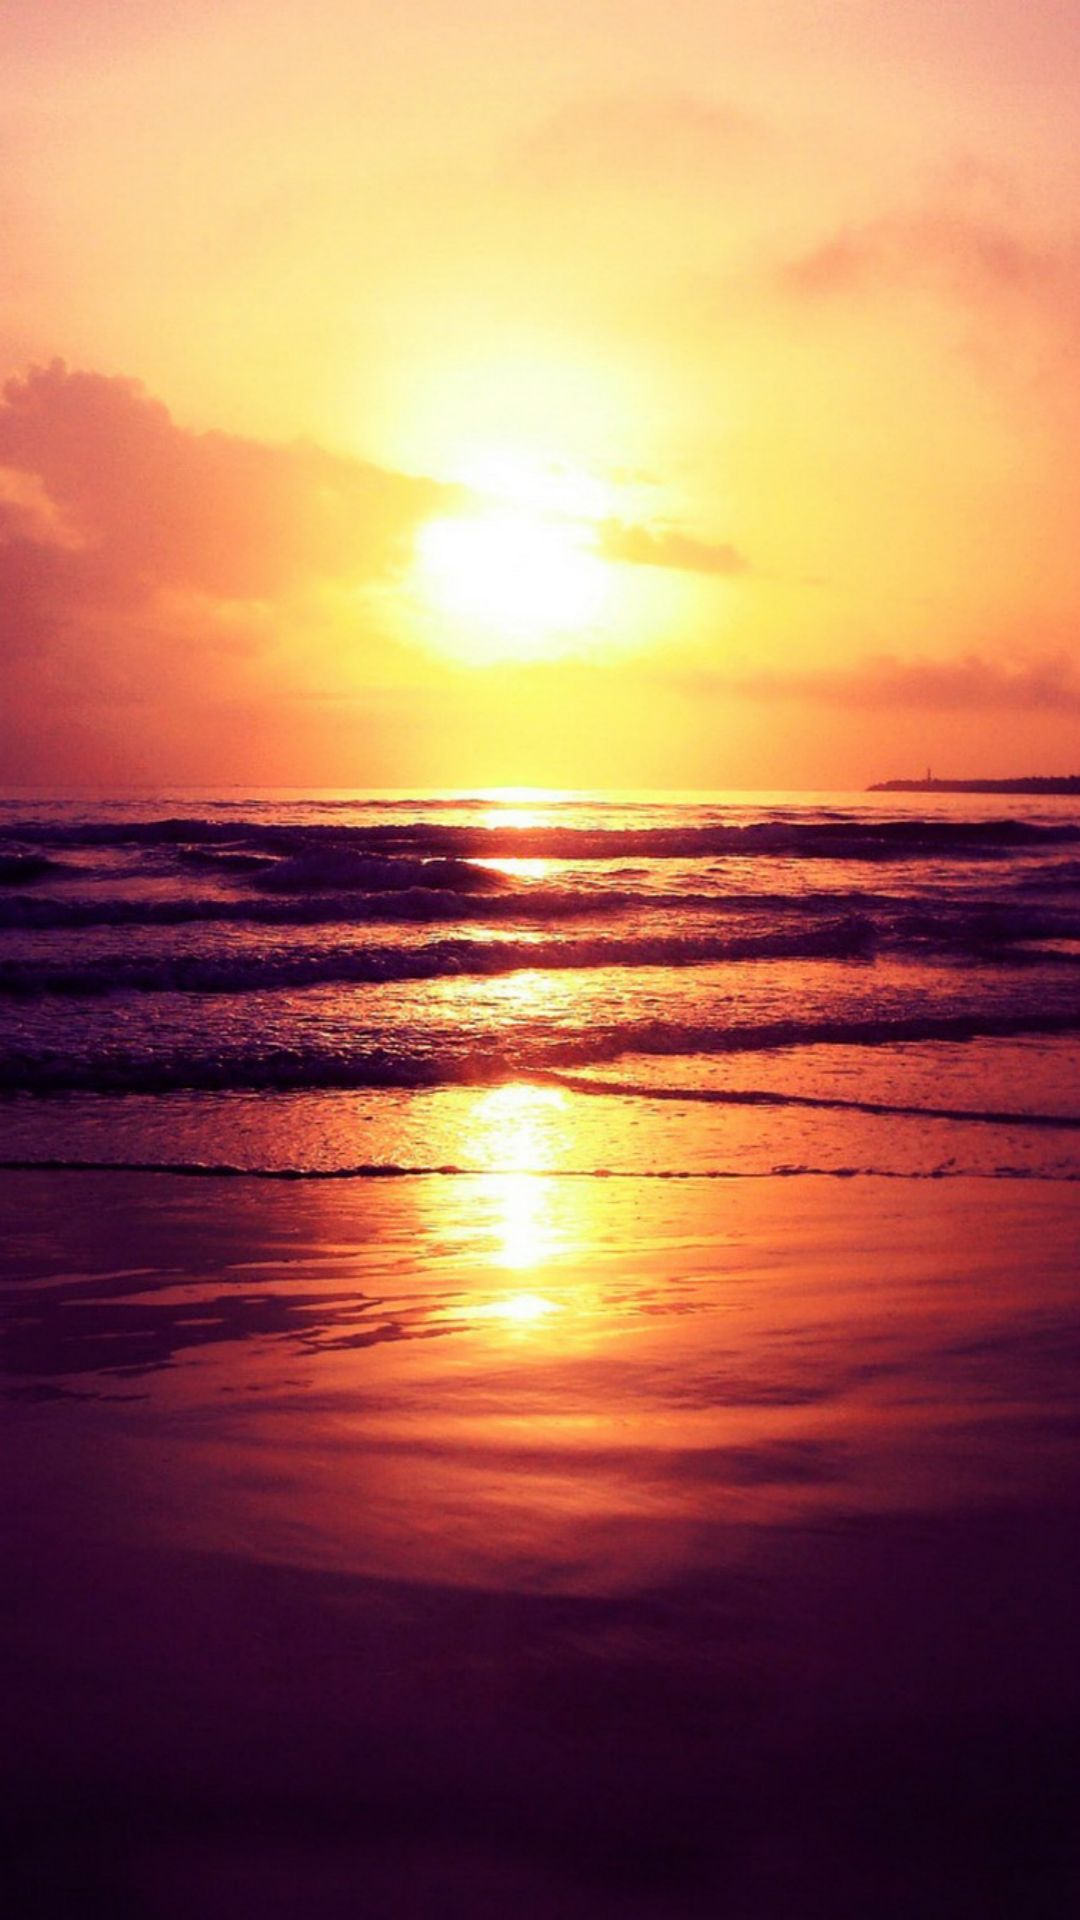 Setting Sun Ocean Beach iPhone 8 Wallpapers Nature